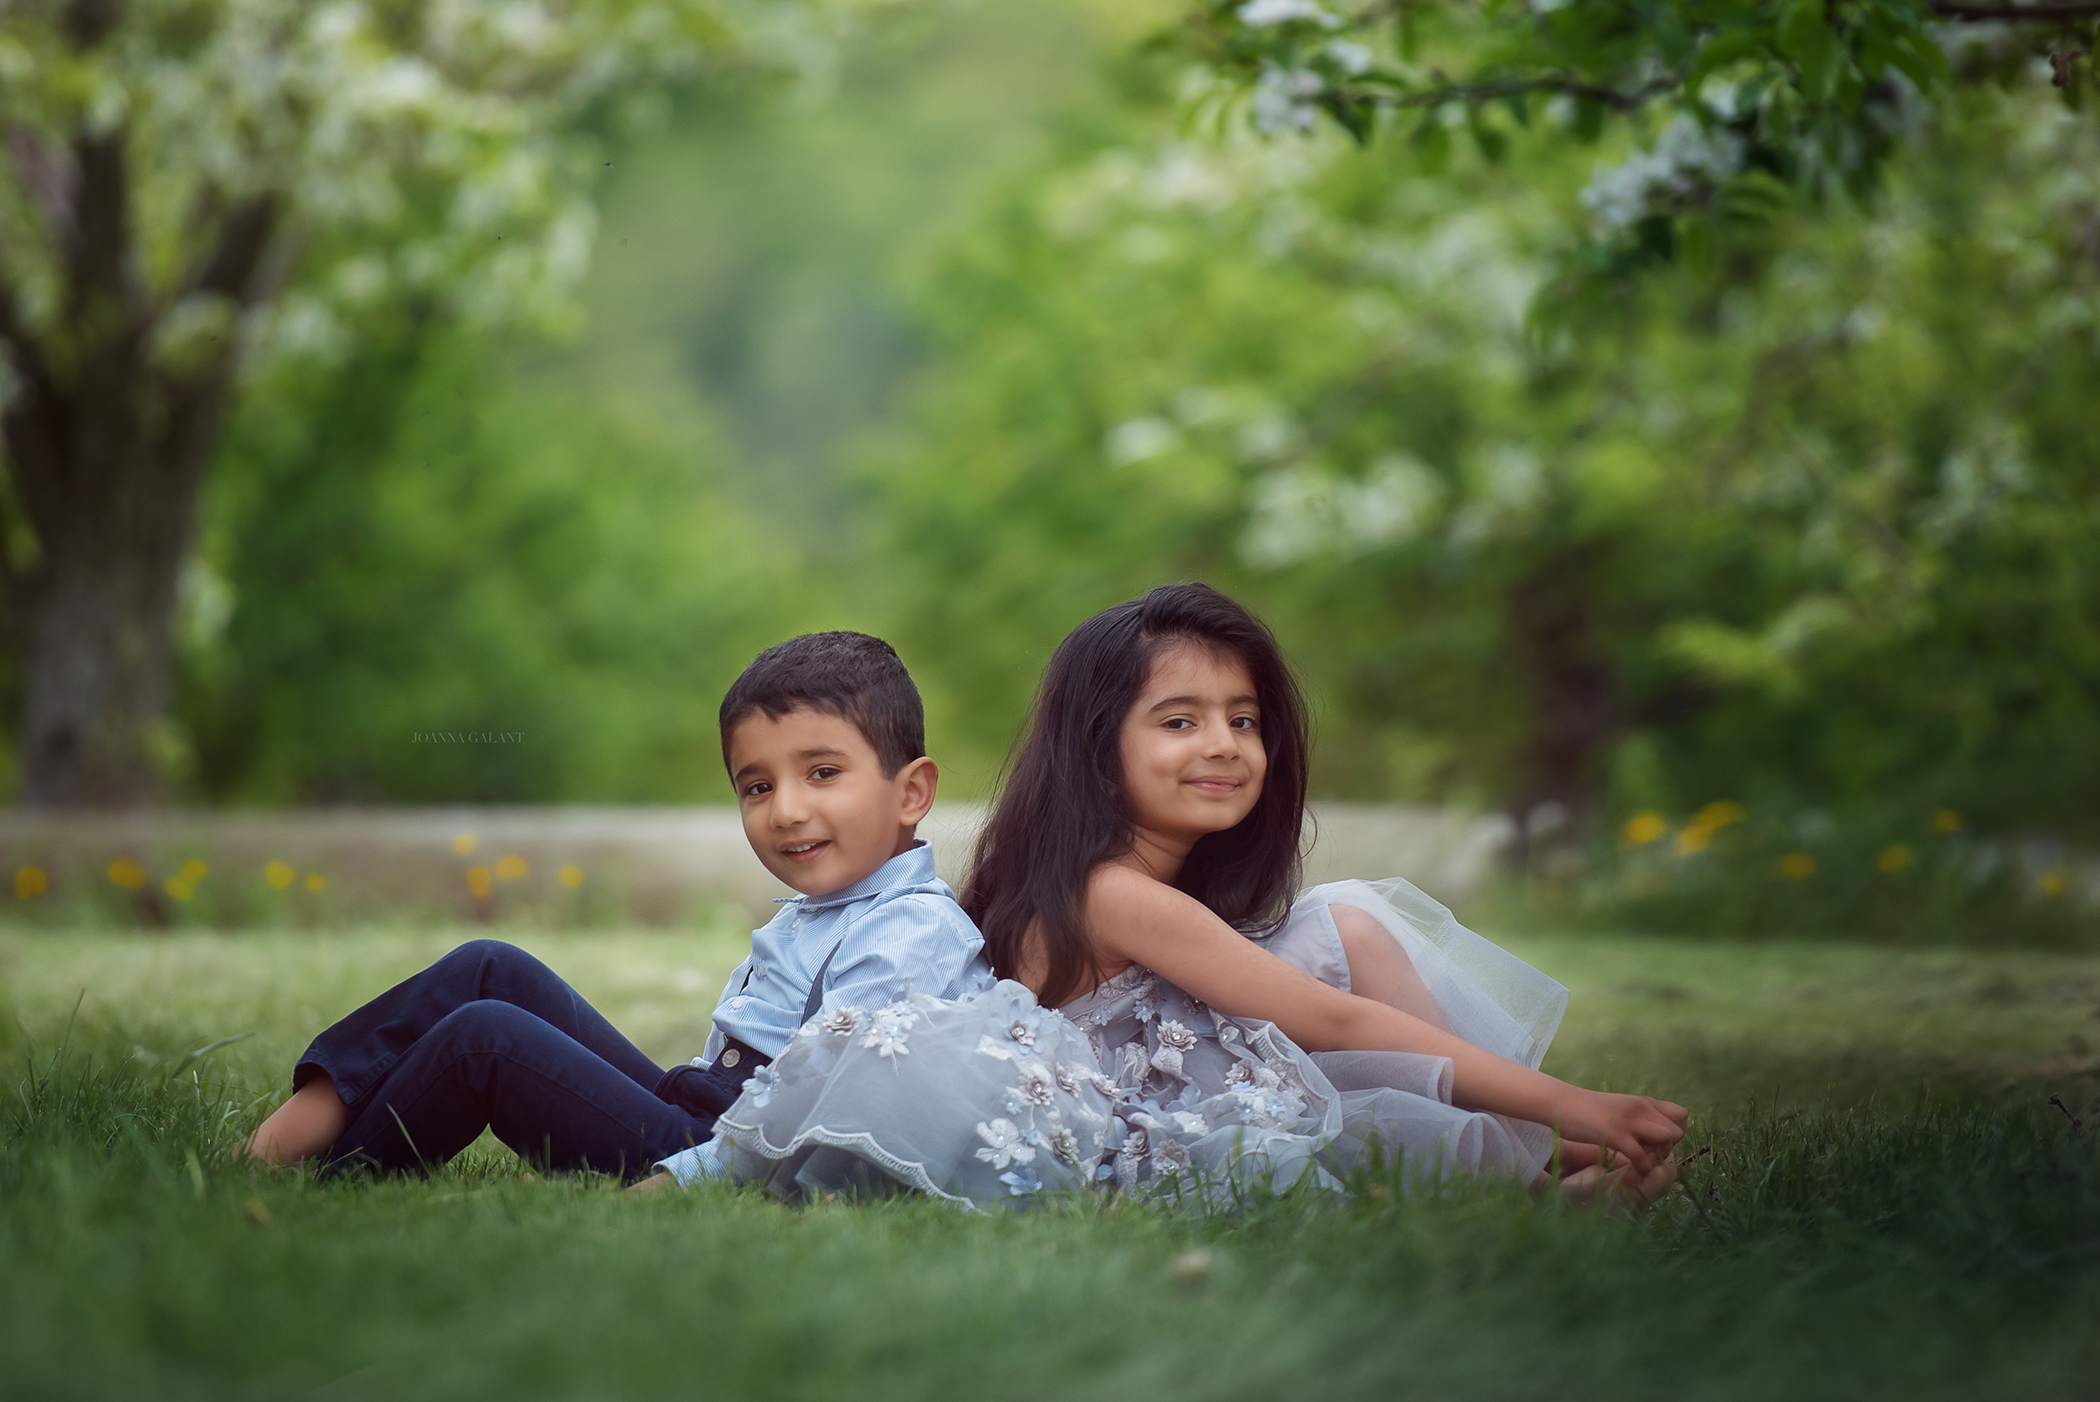 SIBLINGS, APPLE ORCHARD